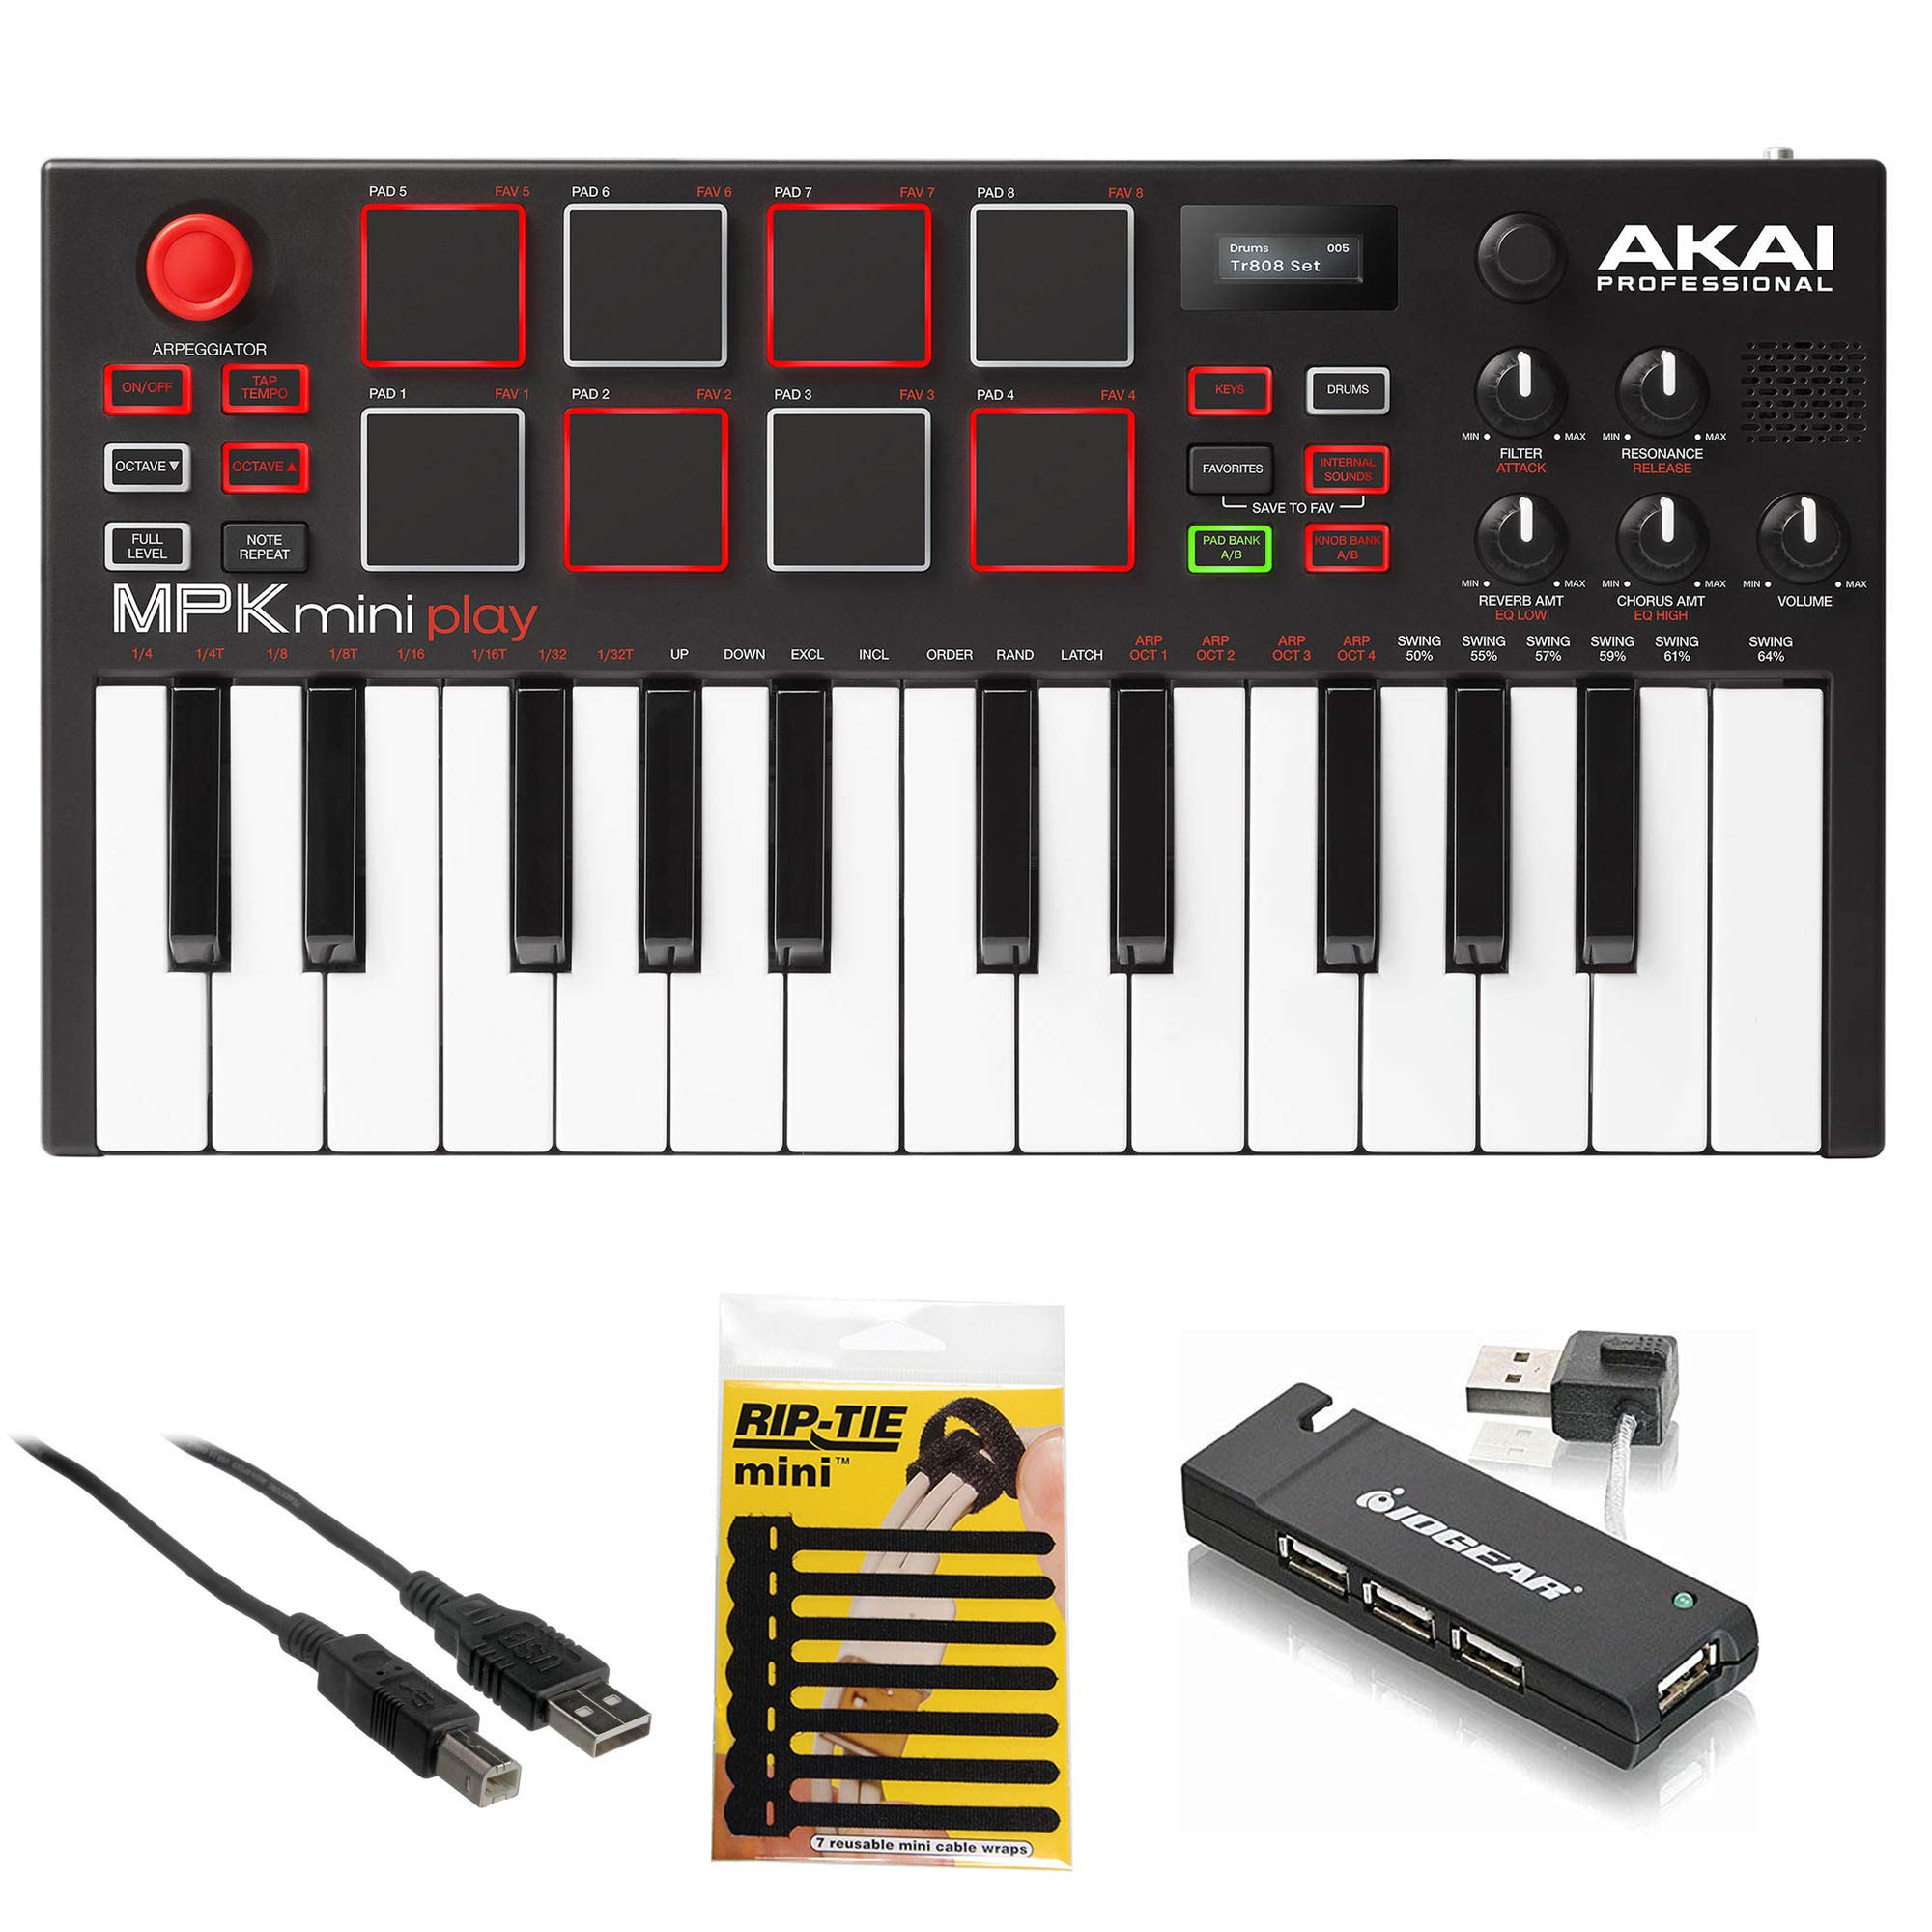 Akai Professional MPK Mini Play - Compact Keyboard and Pad Controller with Integrated Sound Module + Cable + 4-Port USB + Pack of Cable Ties by Akai